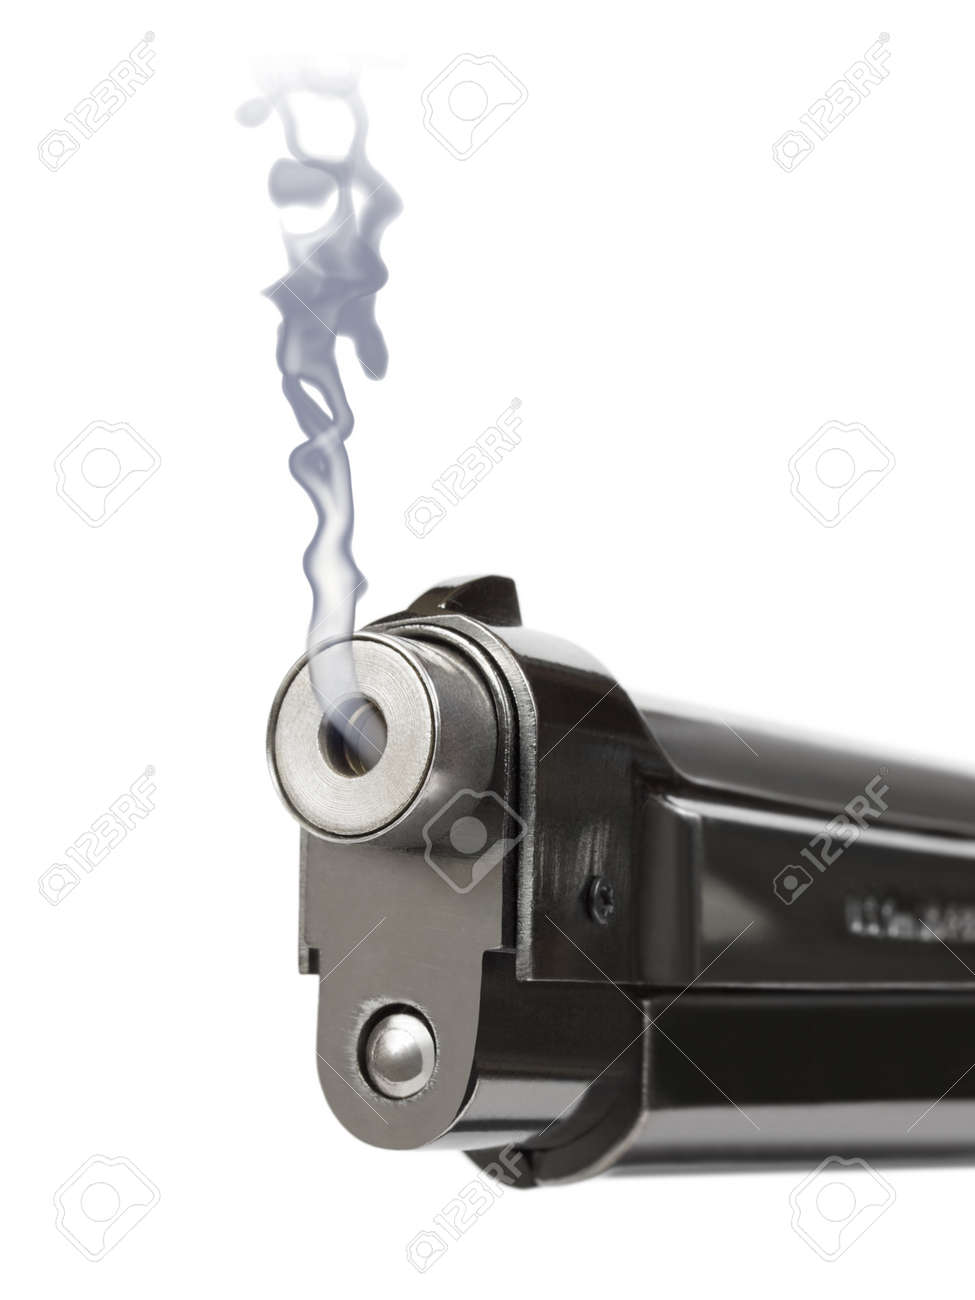 Smoking gun - isolated on white background Stock Photo - 8691007